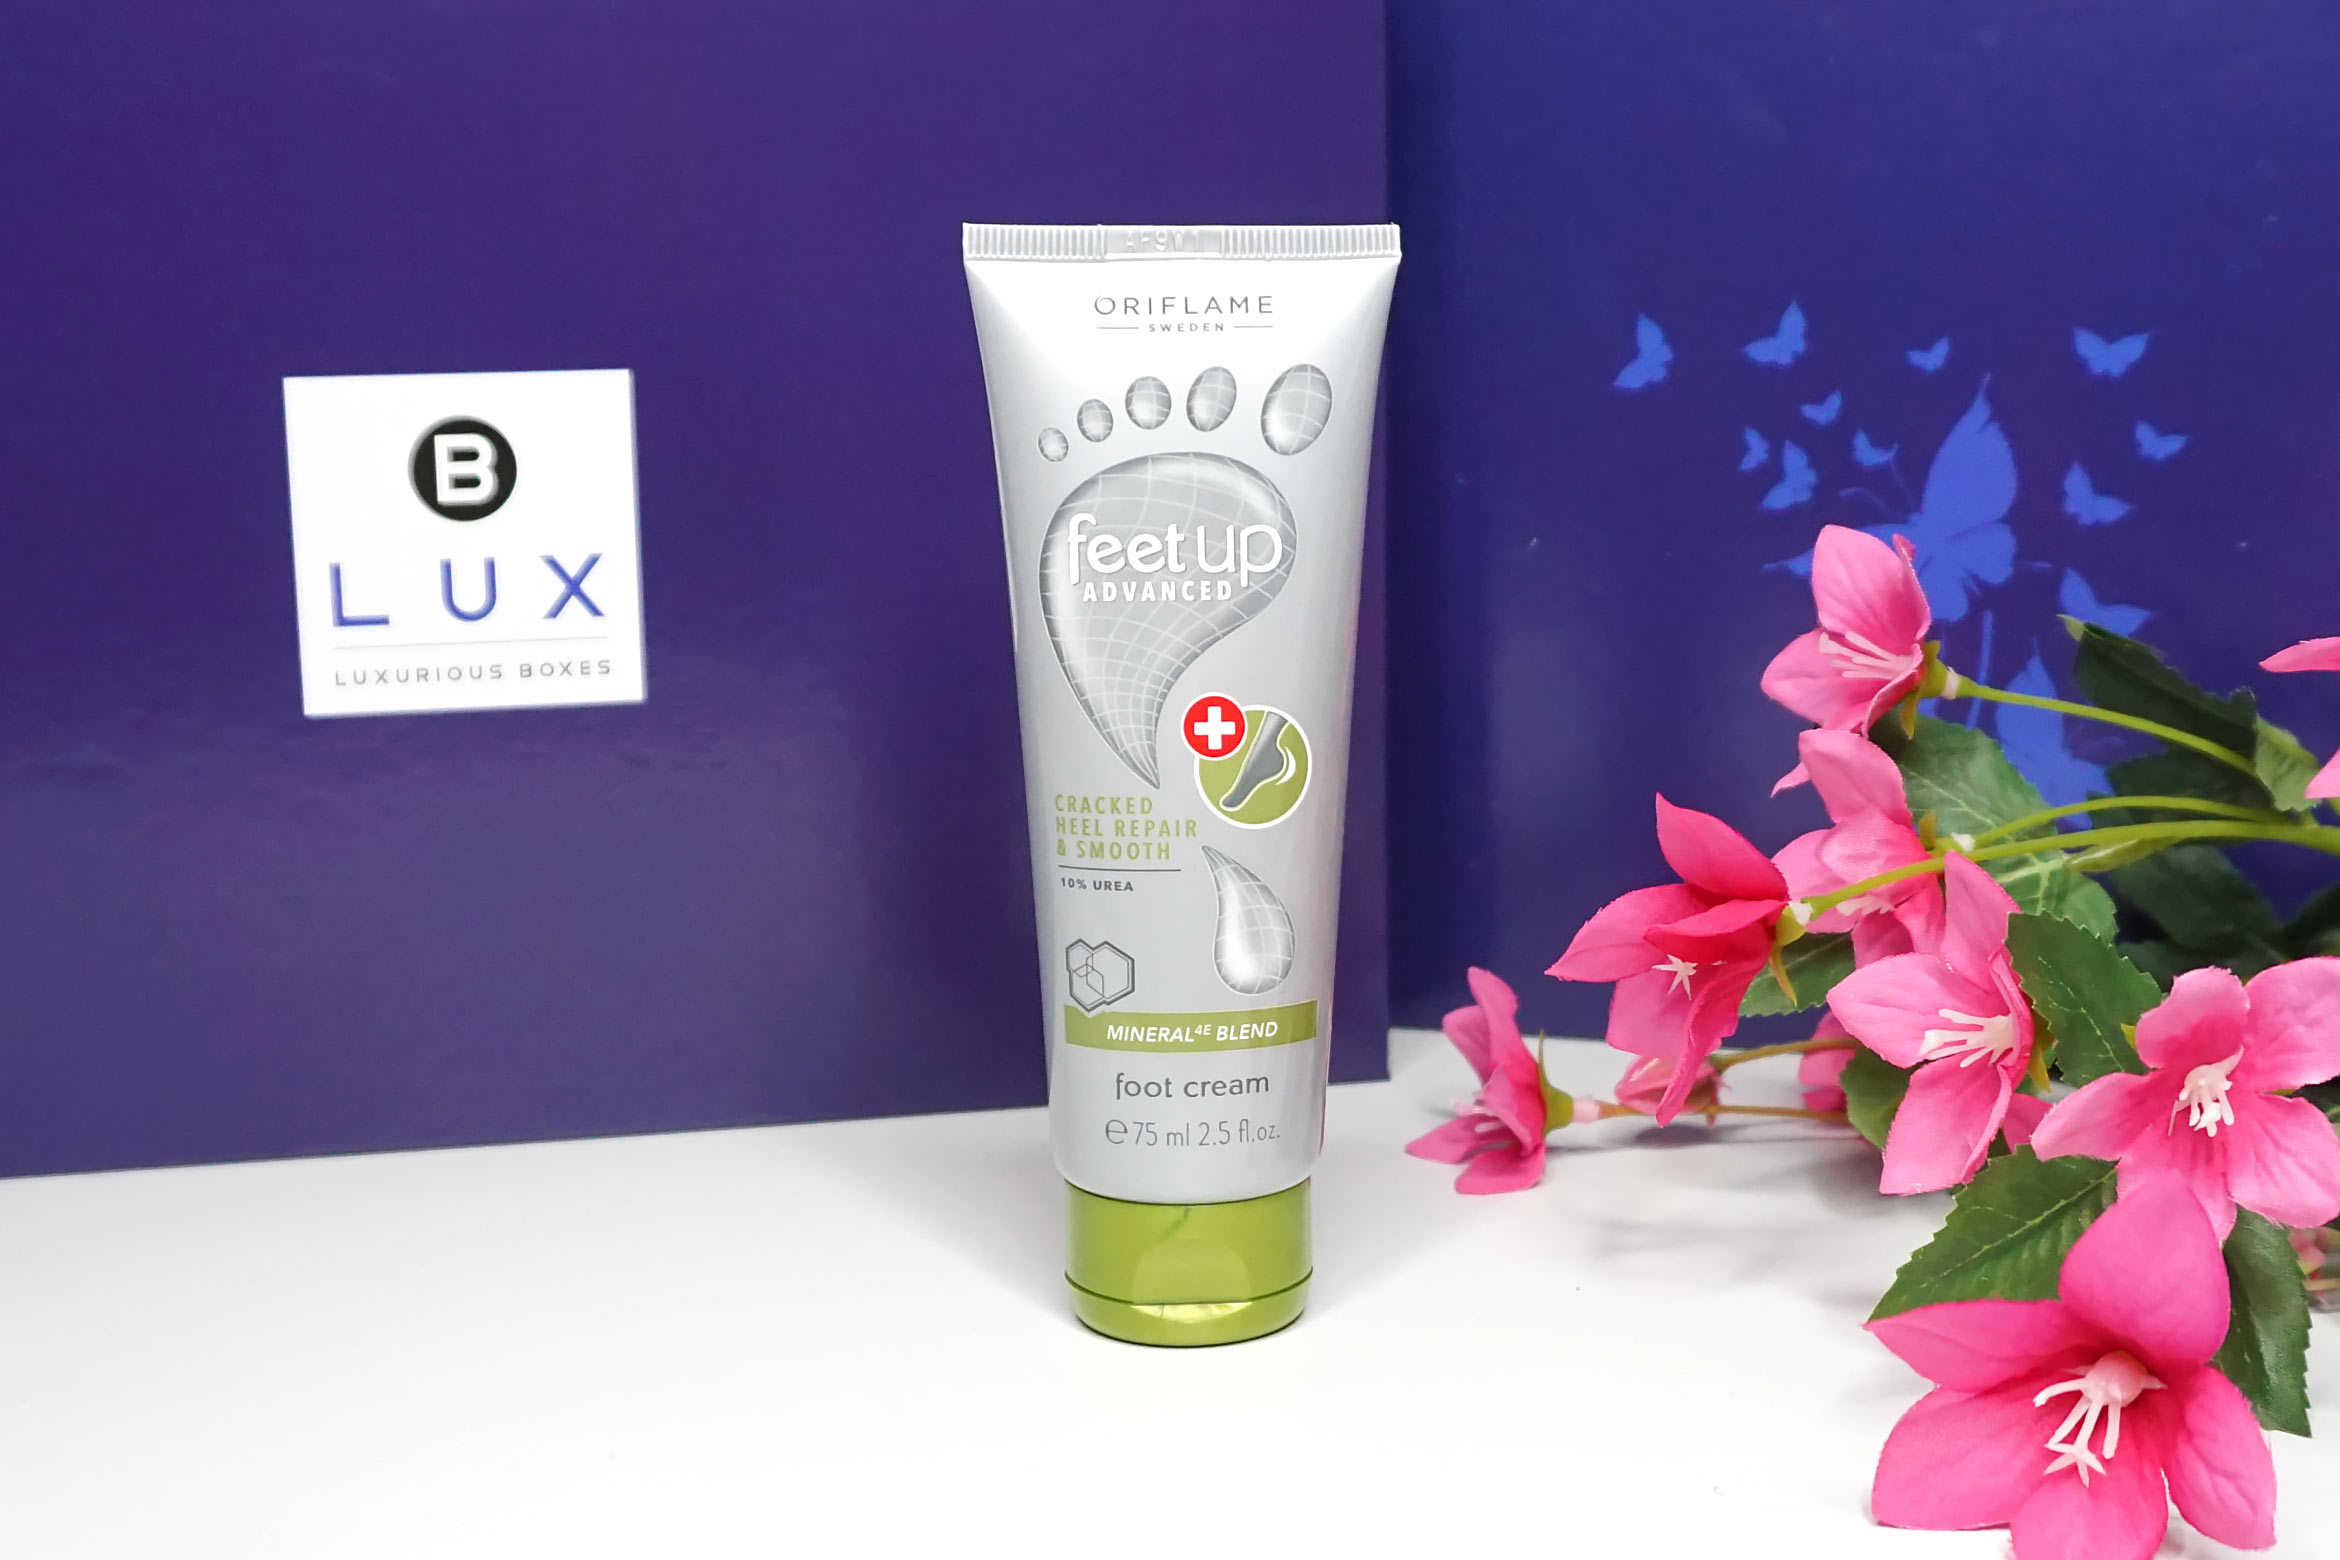 oriflame-feet-up-advanced-cracked-heel-foot-cream-review